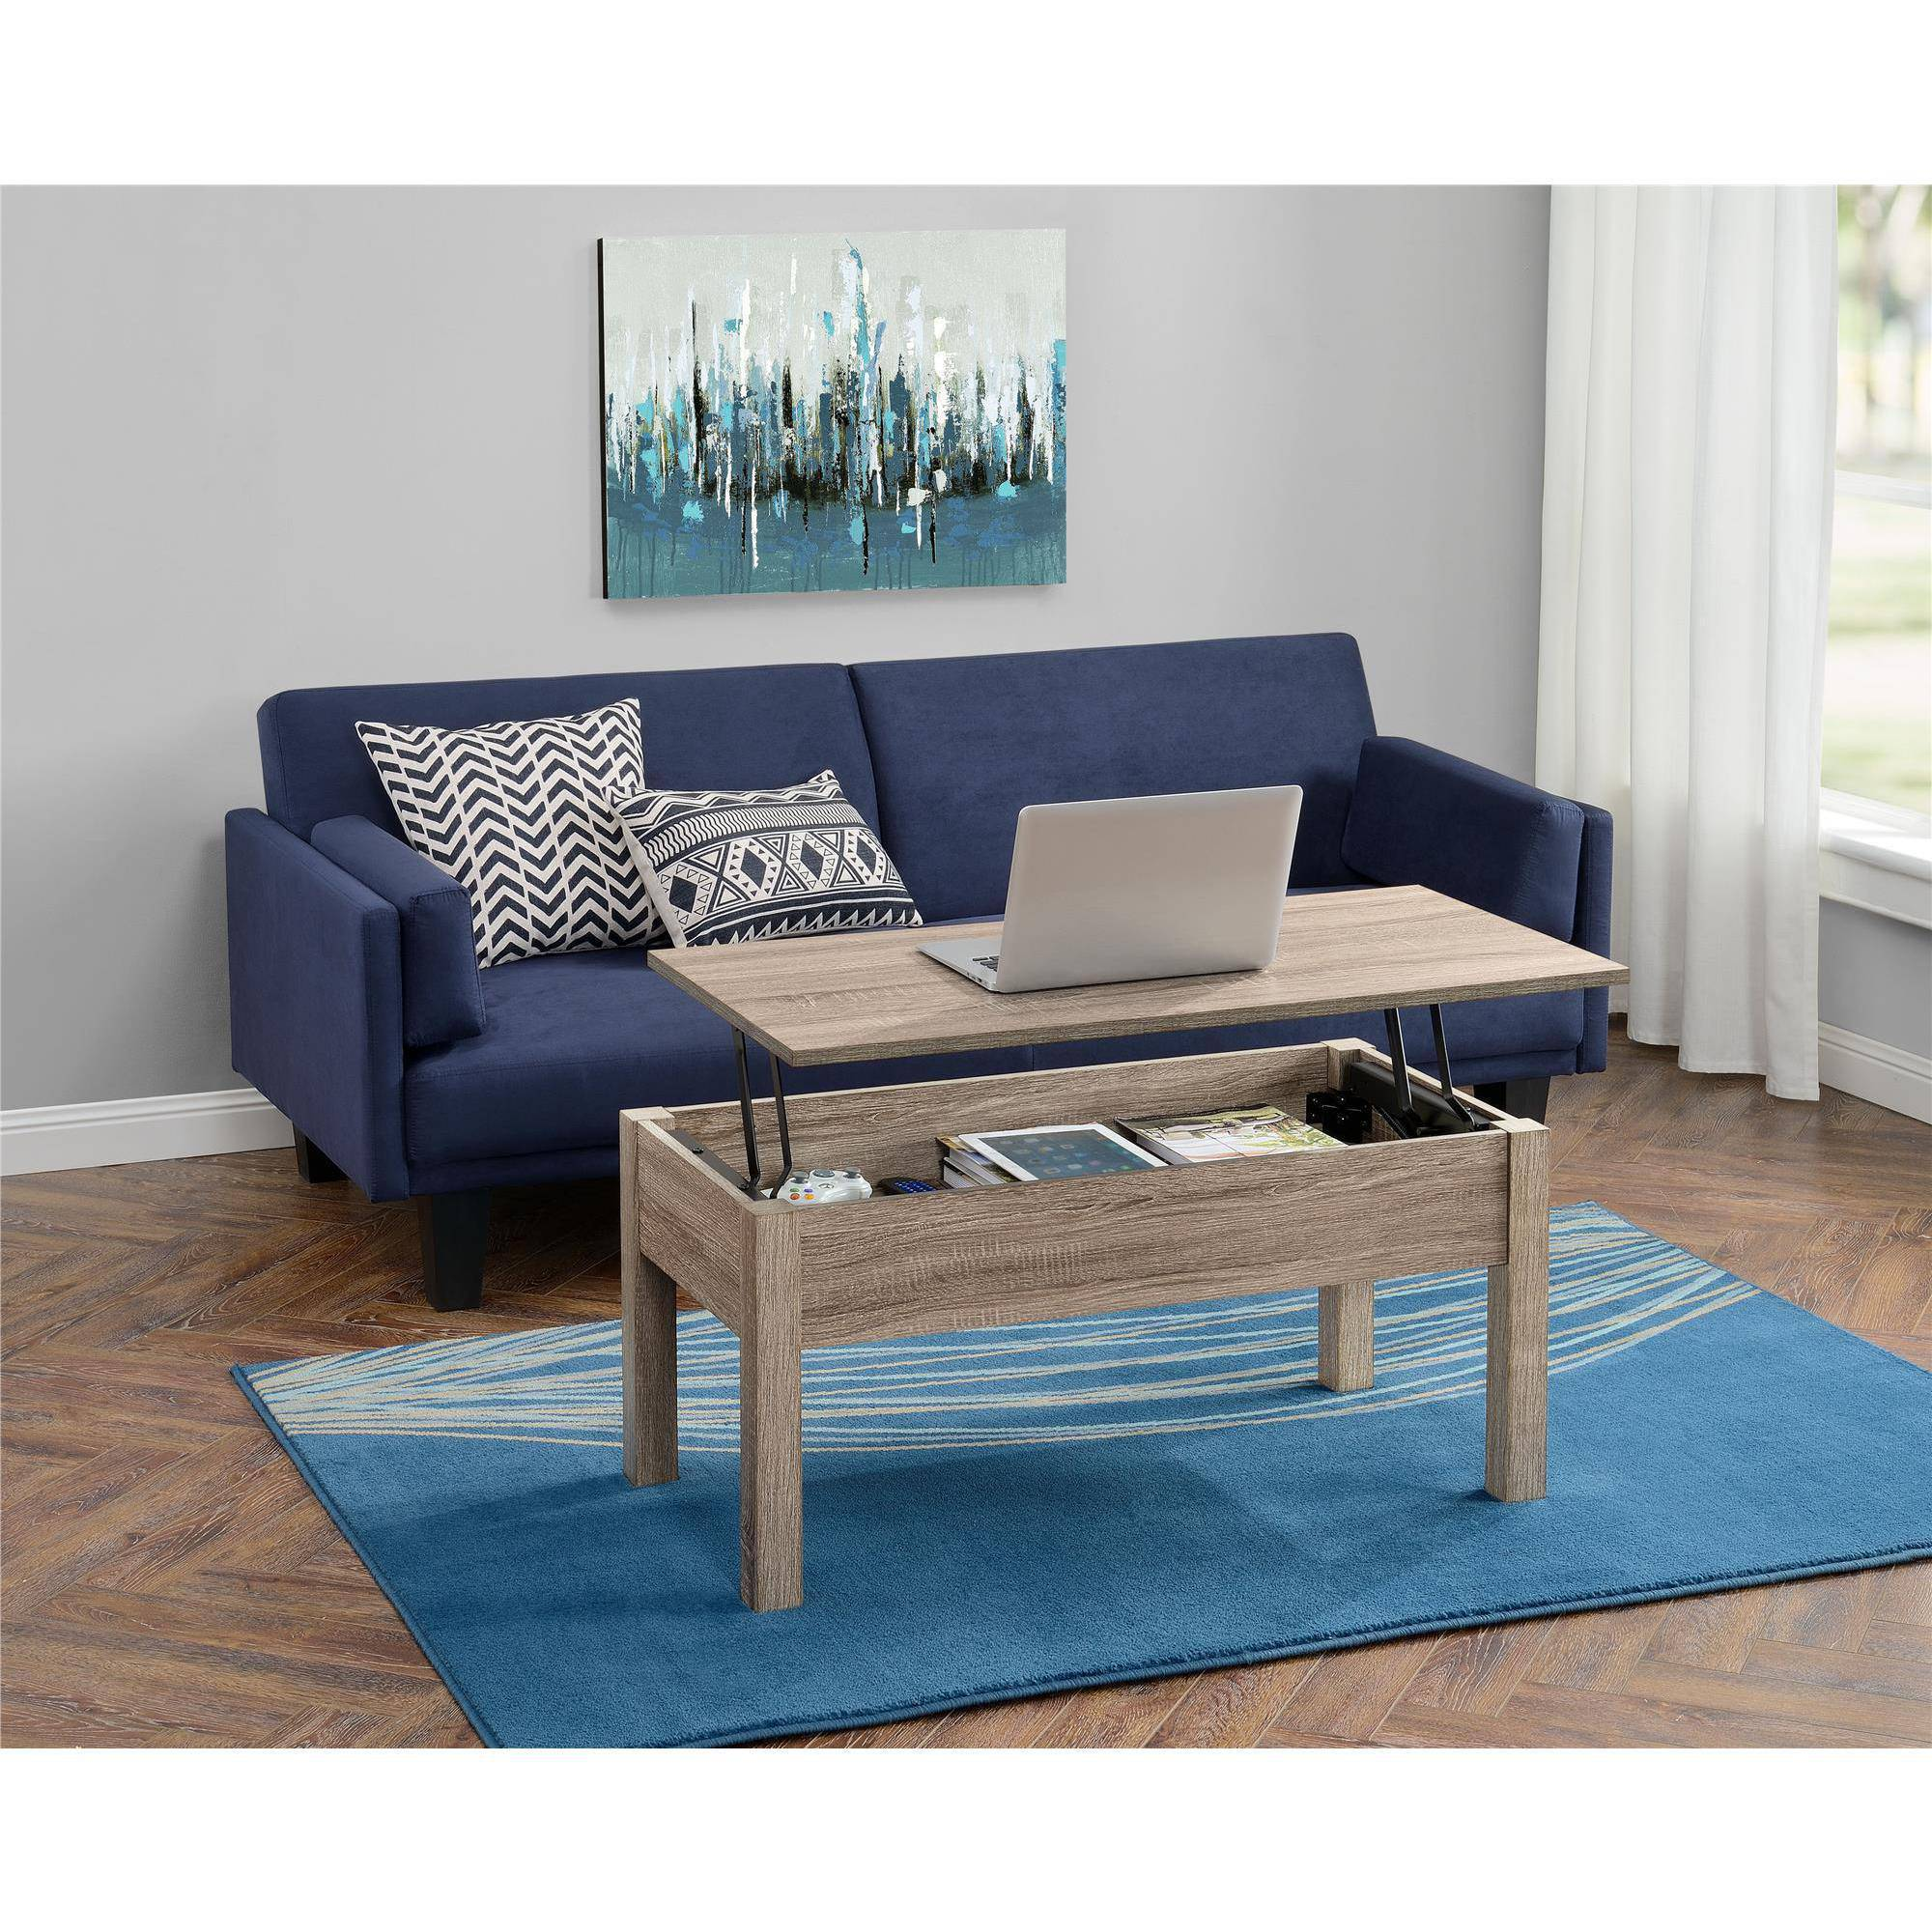 living room table with storage how to arrange furniture around tv mainstays lift top coffee multiple colors walmart com